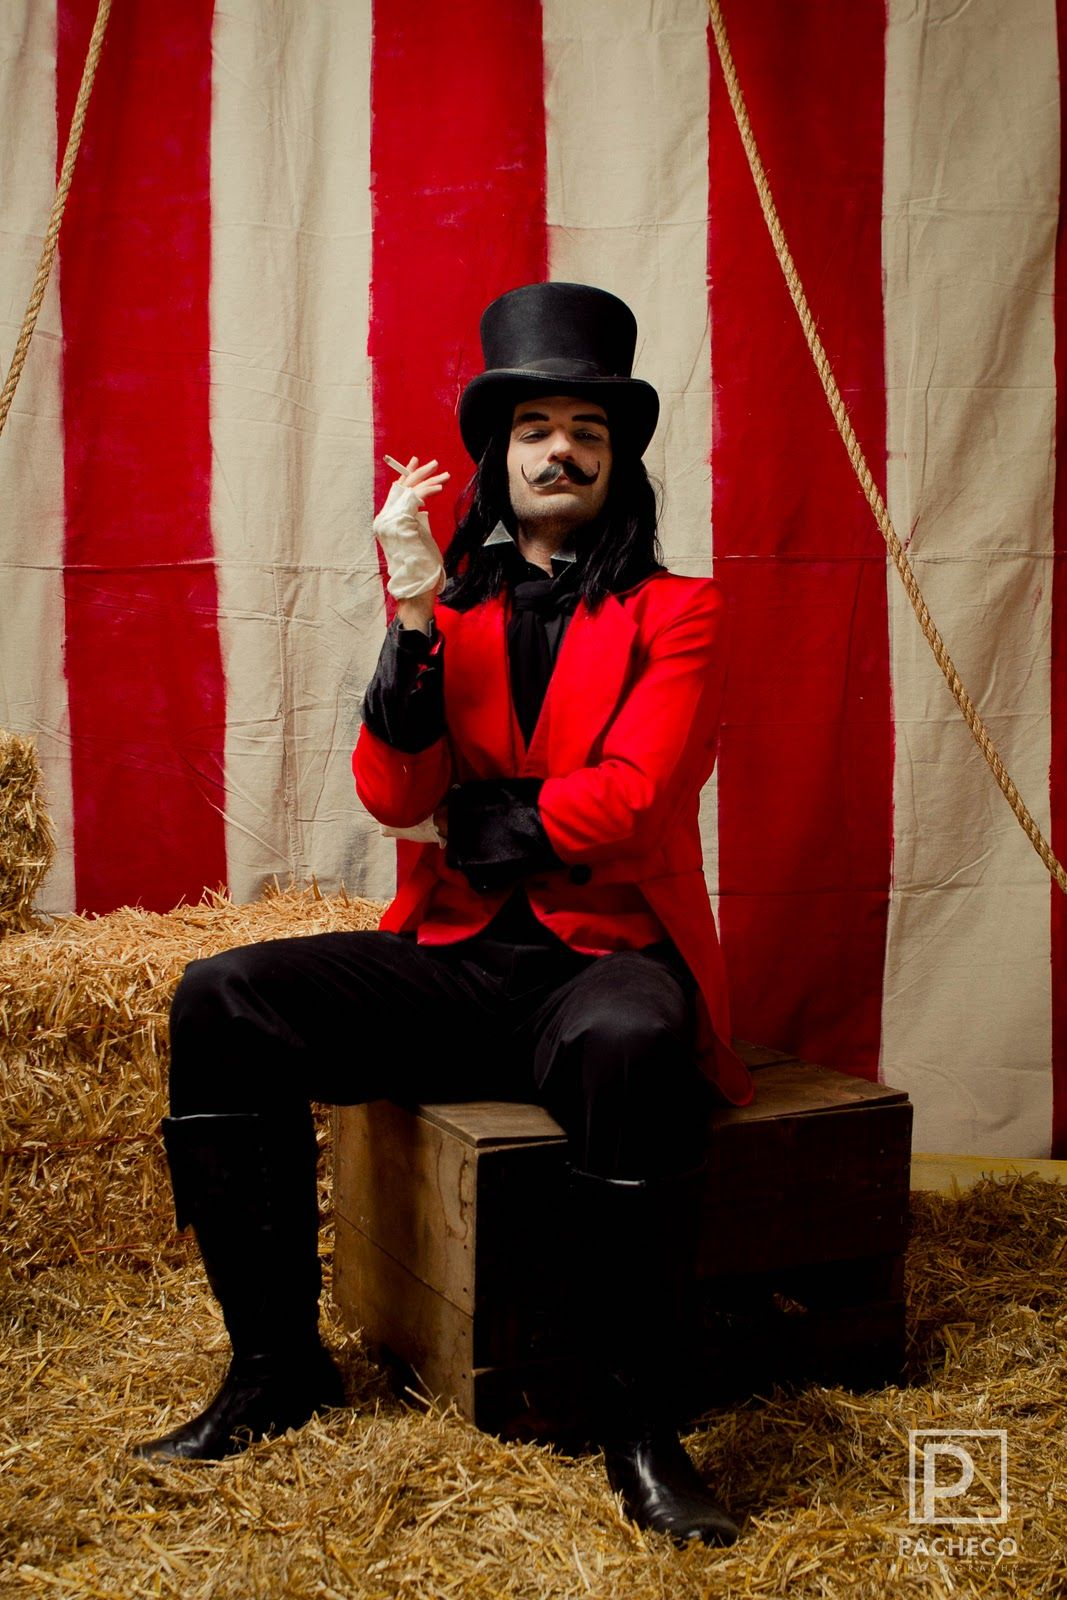 This guy had a circus carnival adult party in his house